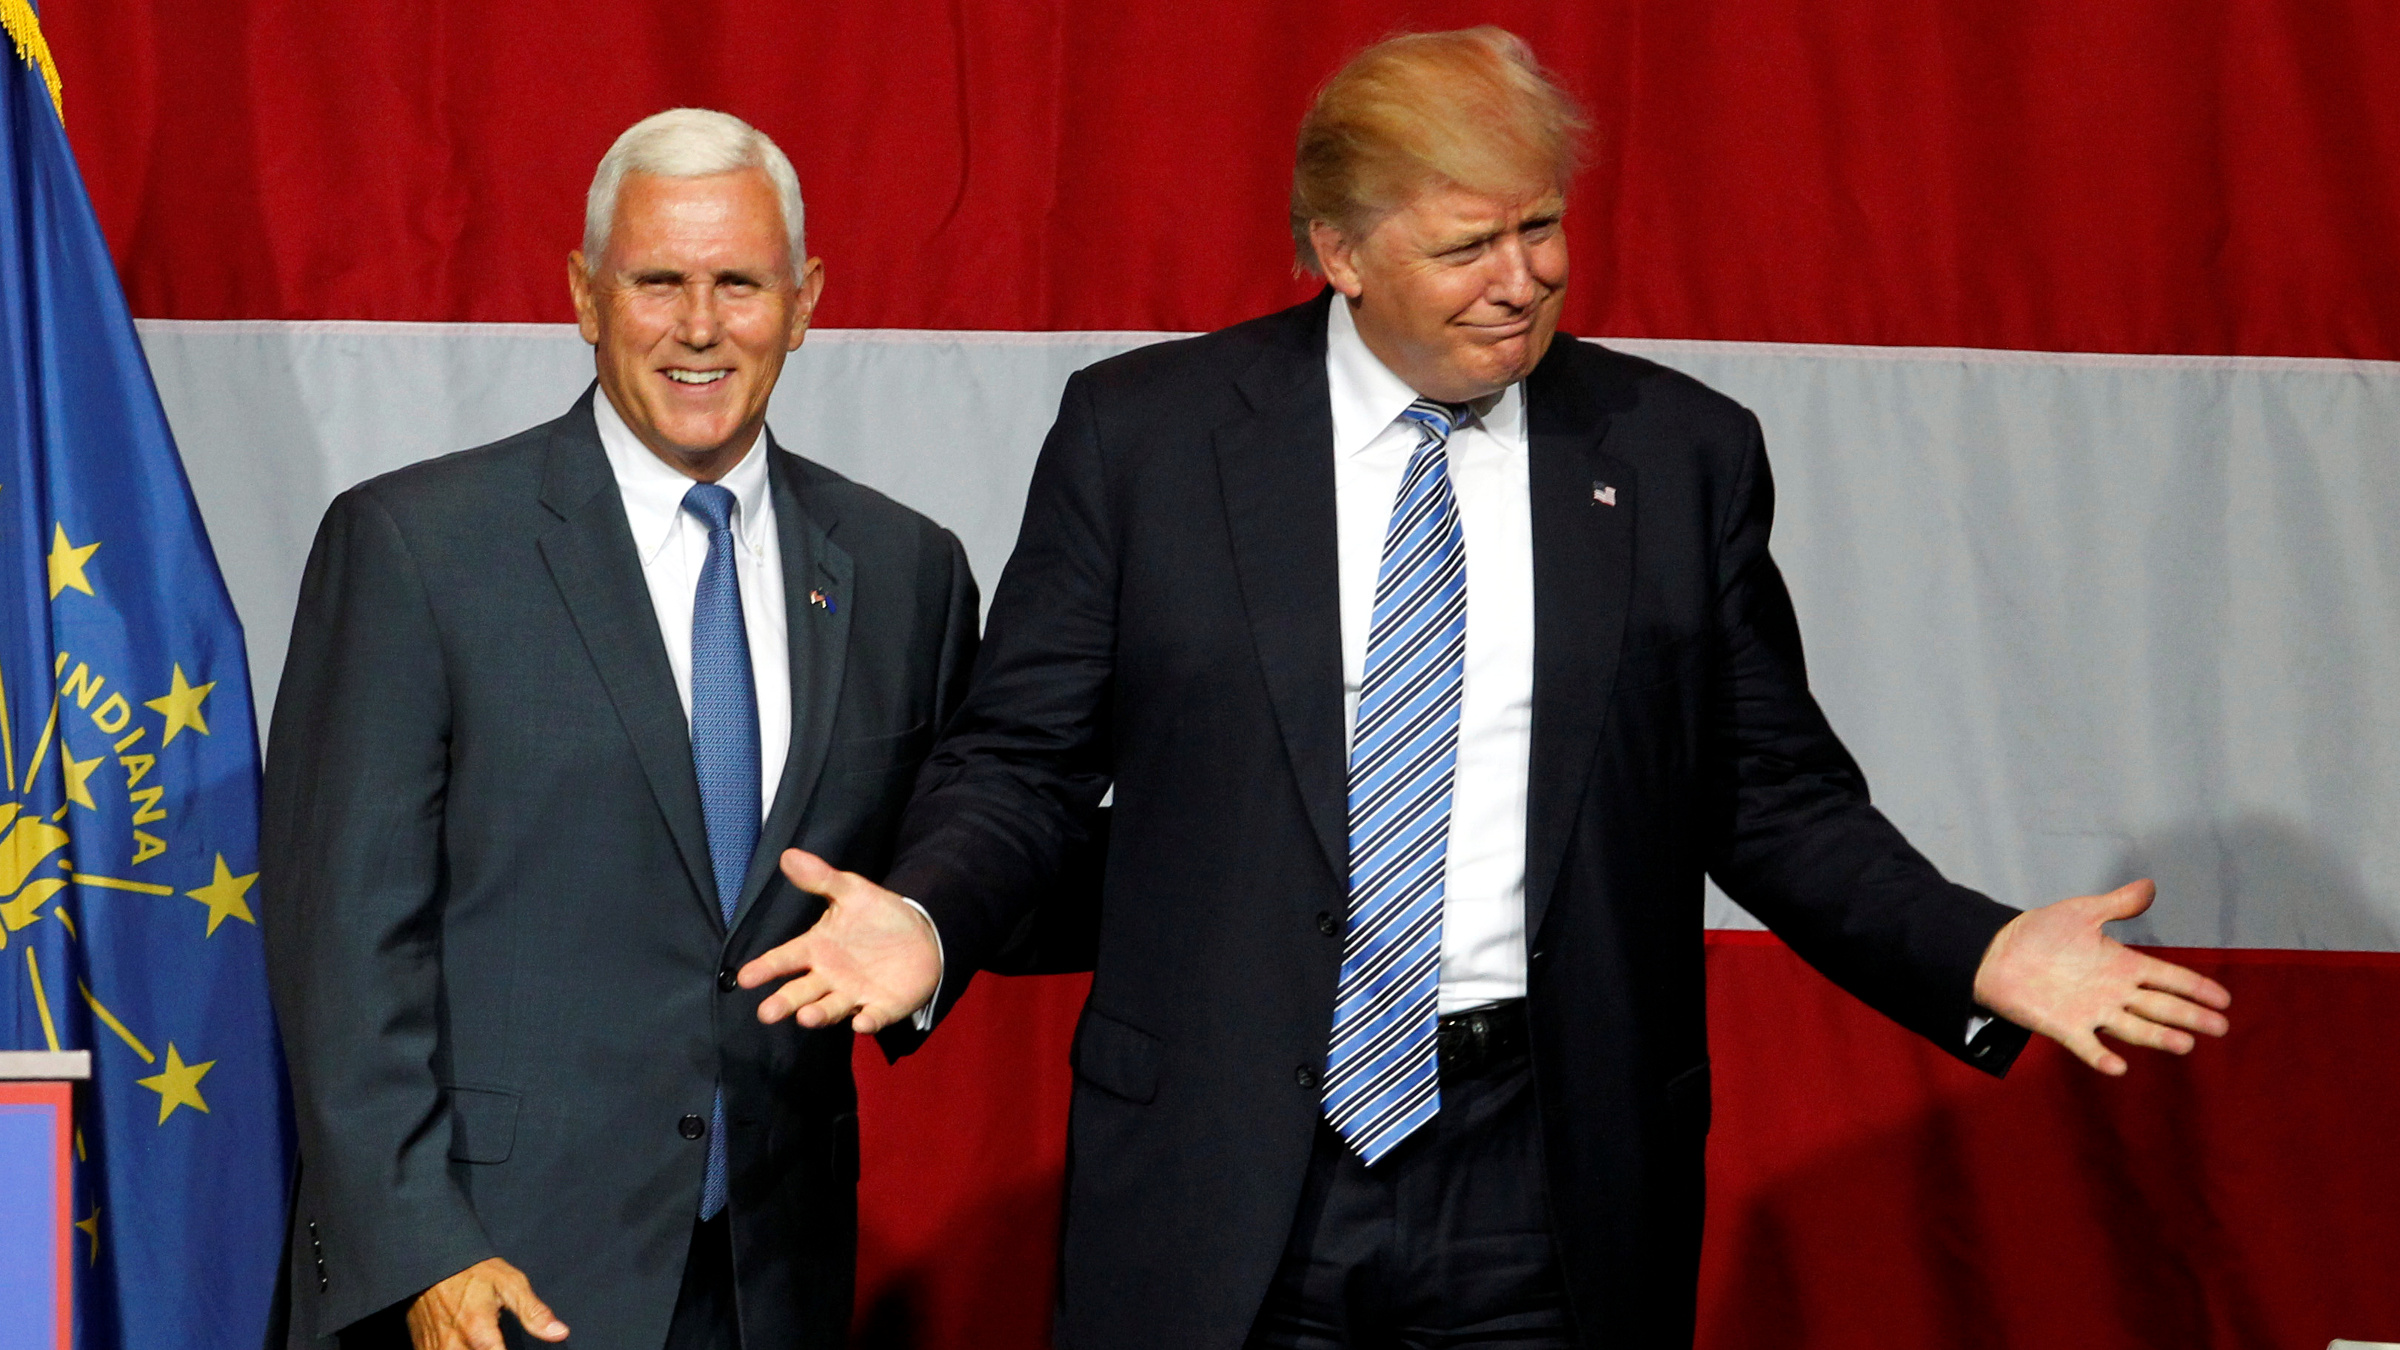 Republican U.S. presidential candidate Donald Trump (R) and Indiana Governor Mike Pence (L) wave to the crowd before addressing the crowd during a campaign stop at the Grand Park Events Center in Westfield, Indiana, July 12, 2016.